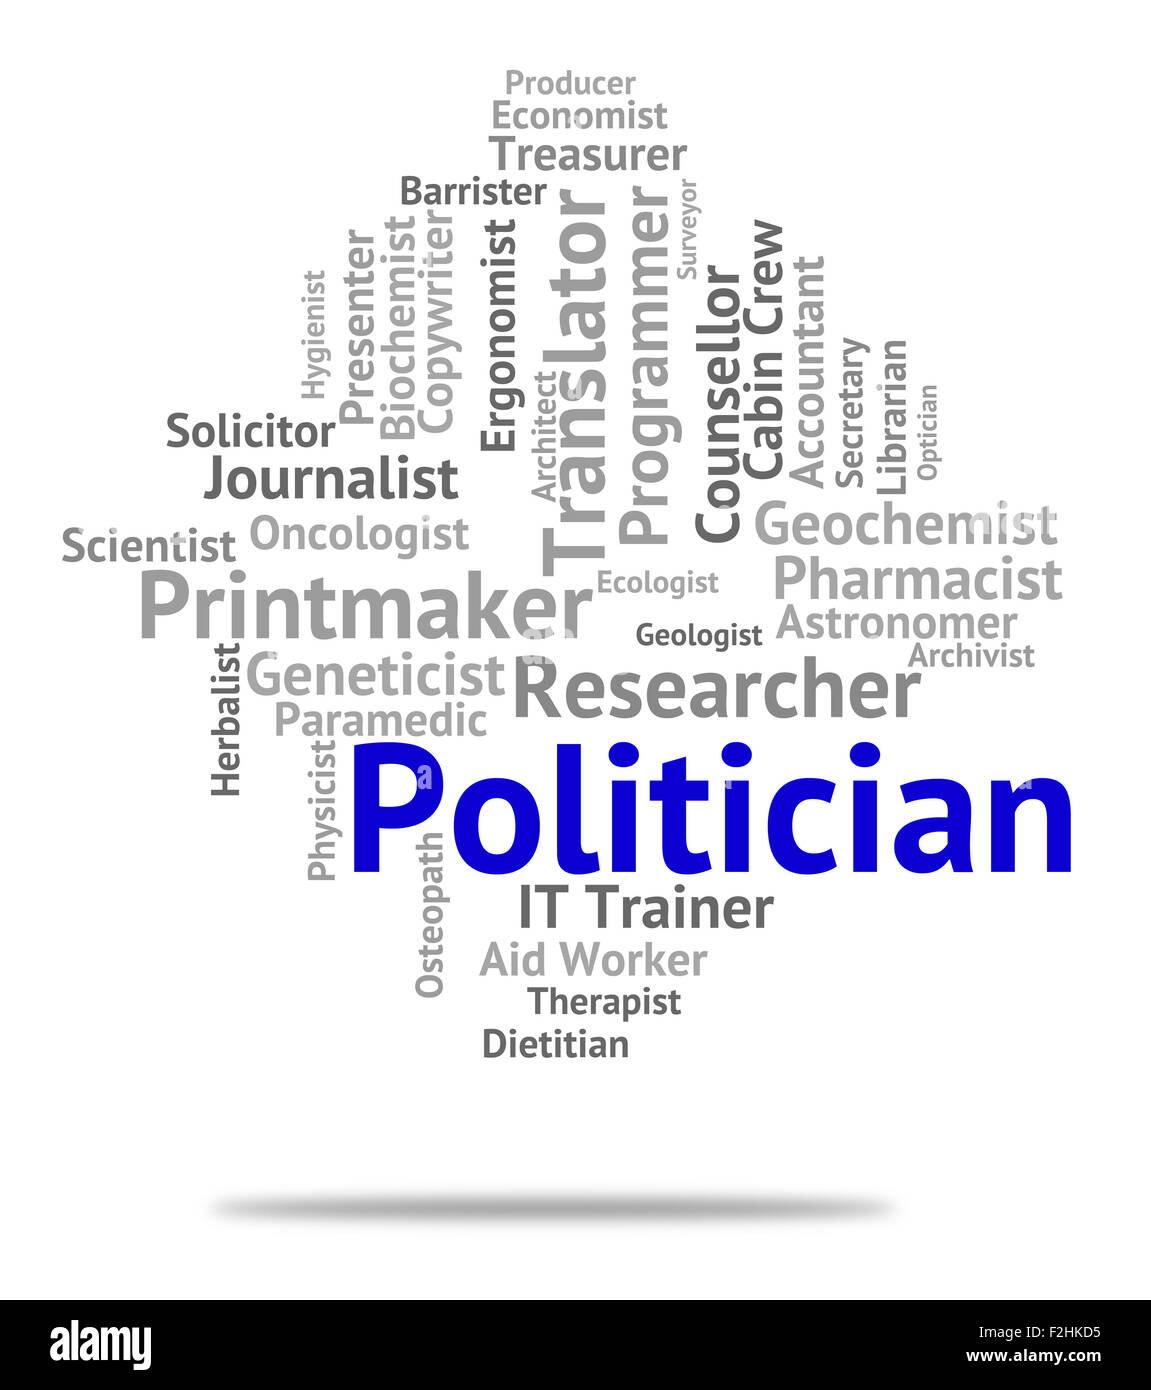 Politician Job Meaning Member Parliament High Resolution Stock Photography And Images Alamy